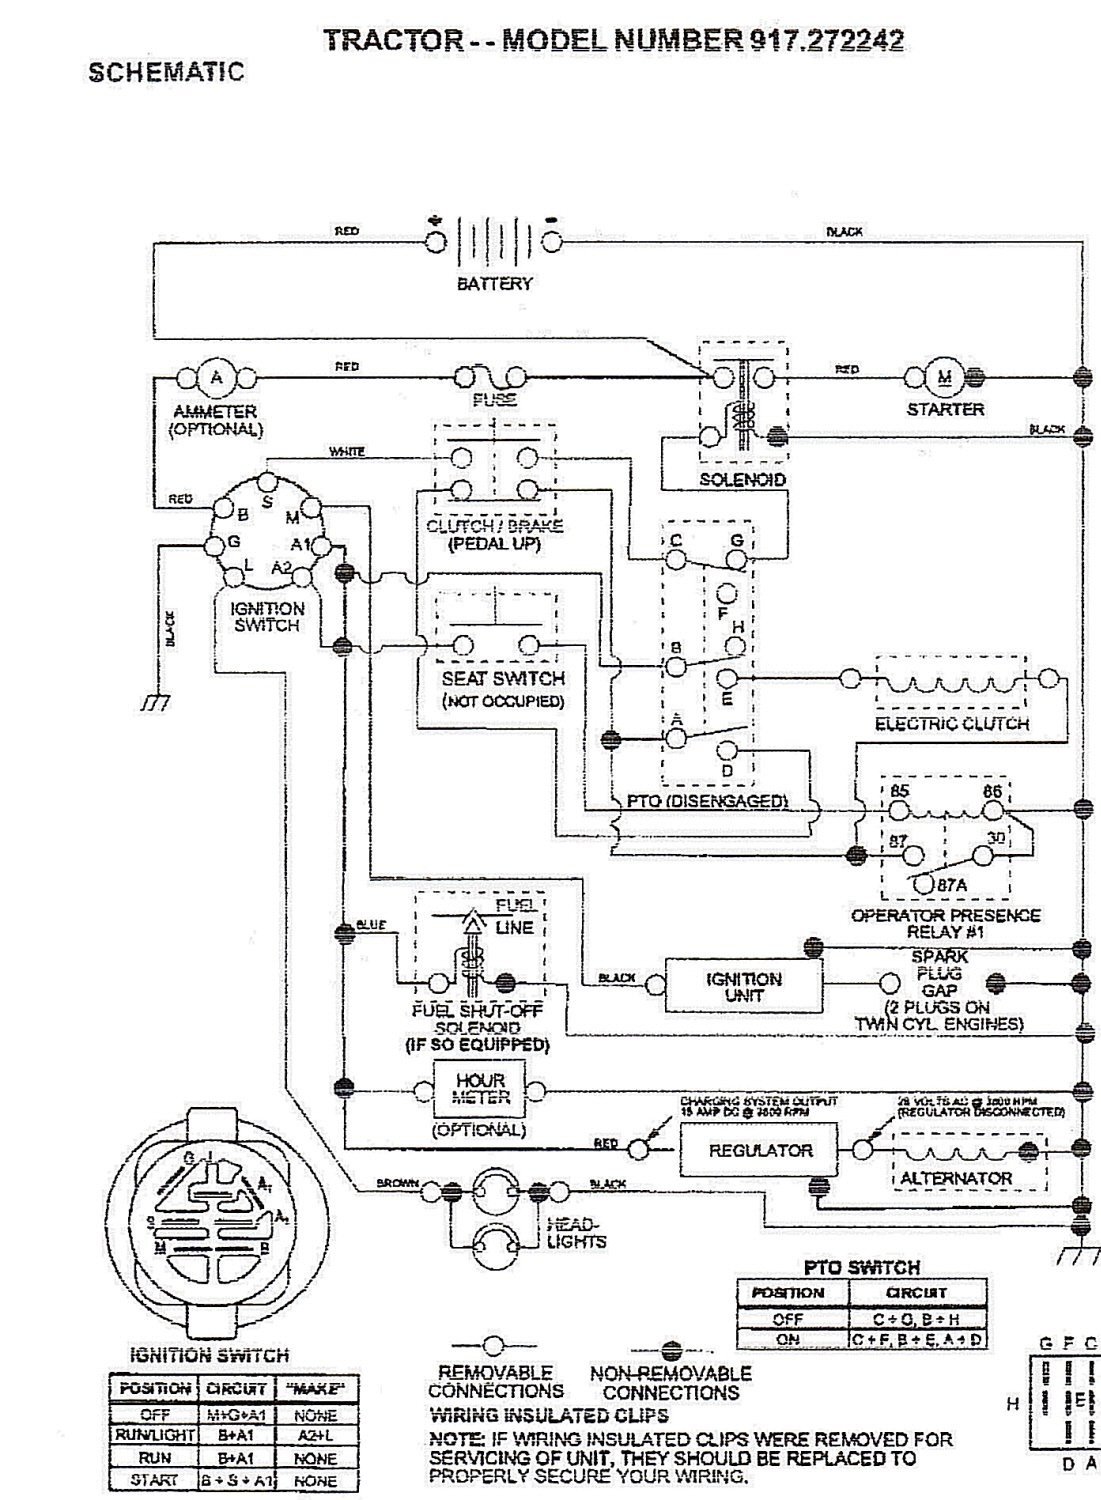 Briggs Wiring Diagram 12 Up - Wiring Data Diagram - Briggs And Stratton Wiring Diagram 16 Hp